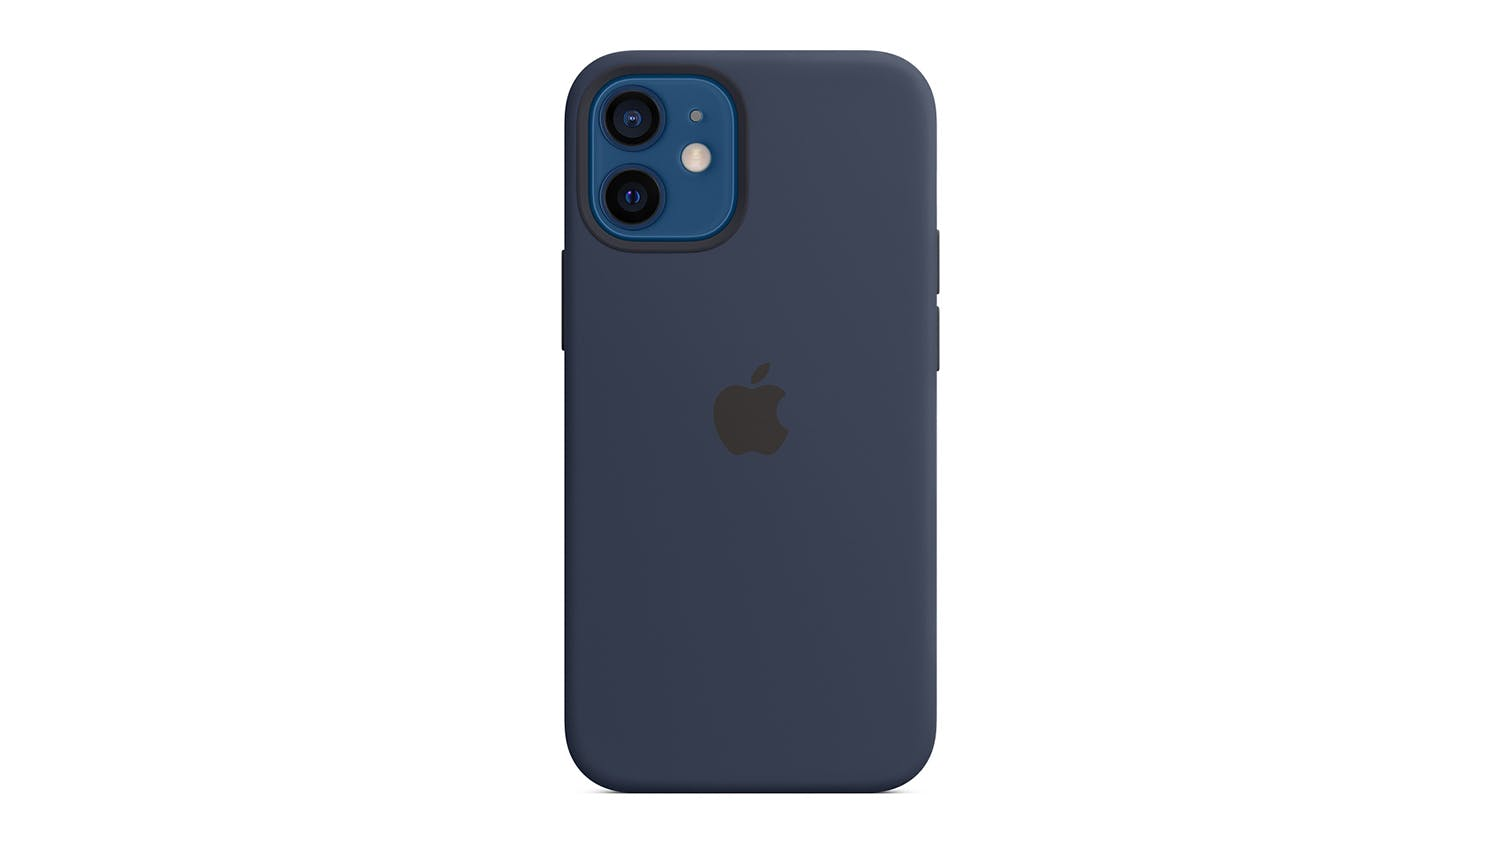 Apple Silicone Case with MagSafe for iPhone 12 mini - Deep Navy